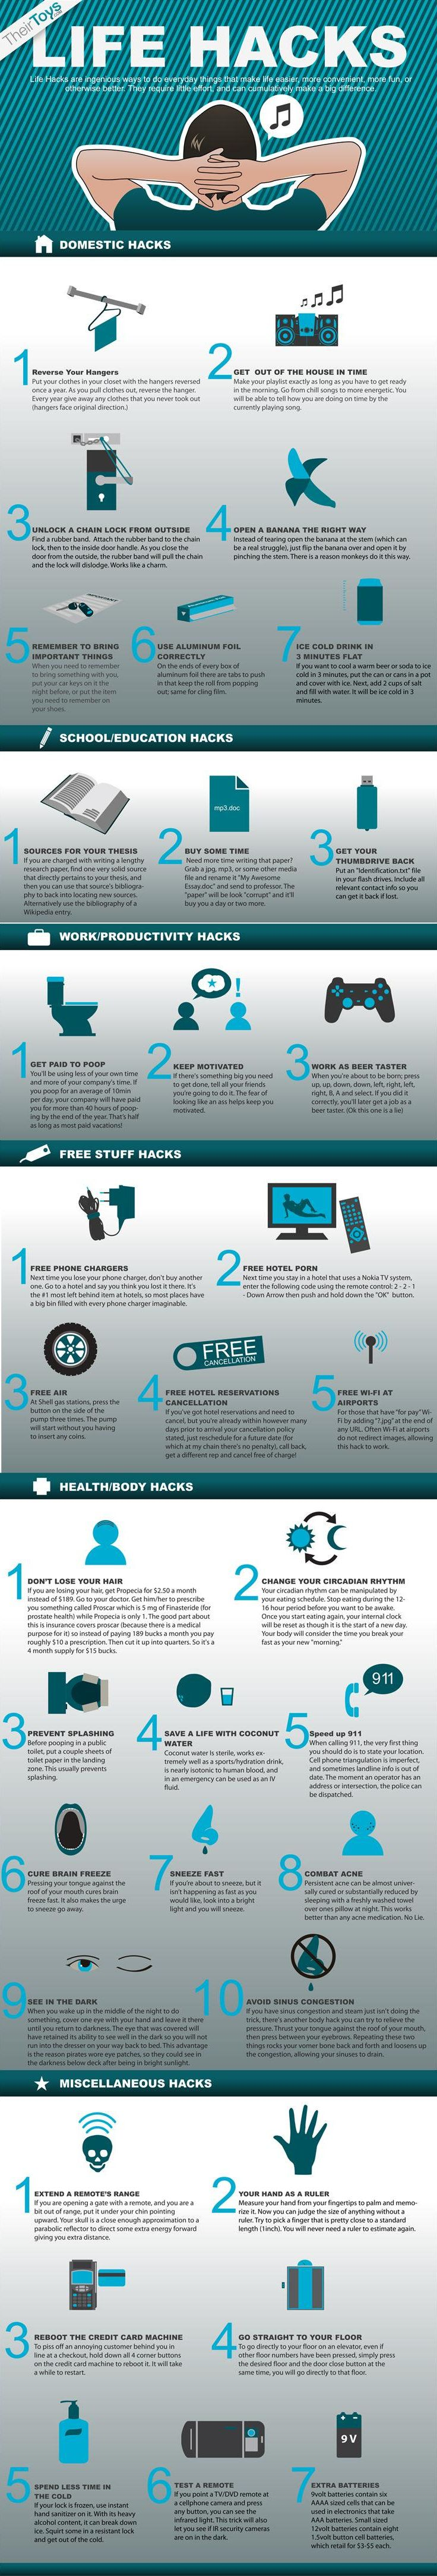 35 MacGyver Tips Clever Uses And Other Life Hacks In One Infographic